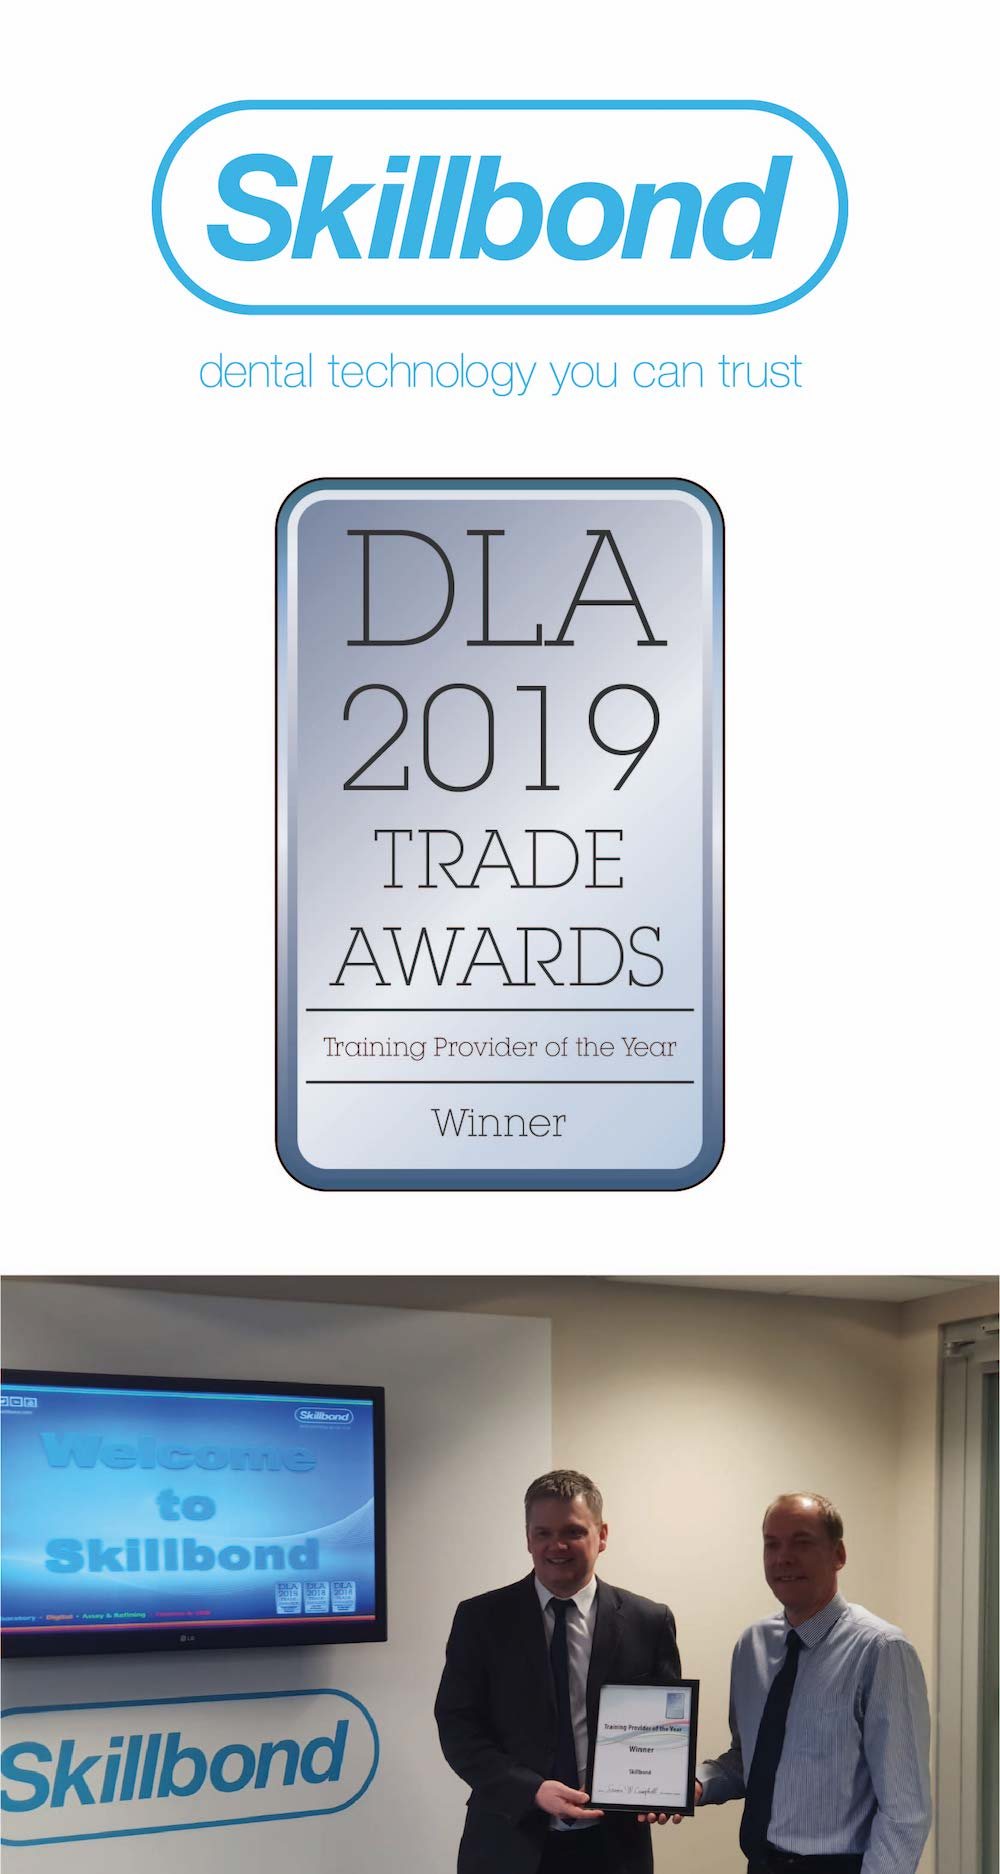 """""""Continuous Professional Development is as much an essential part of being a Dental Technician in the UK as being registered with the GDC is. So we are delighted to have been named Training Provider of the Year for the DLA Trade Awards. We have made significant investment in our training, both to make sure that they meet the regulatory requirements as well as the commercial requirements of our customers."""""""